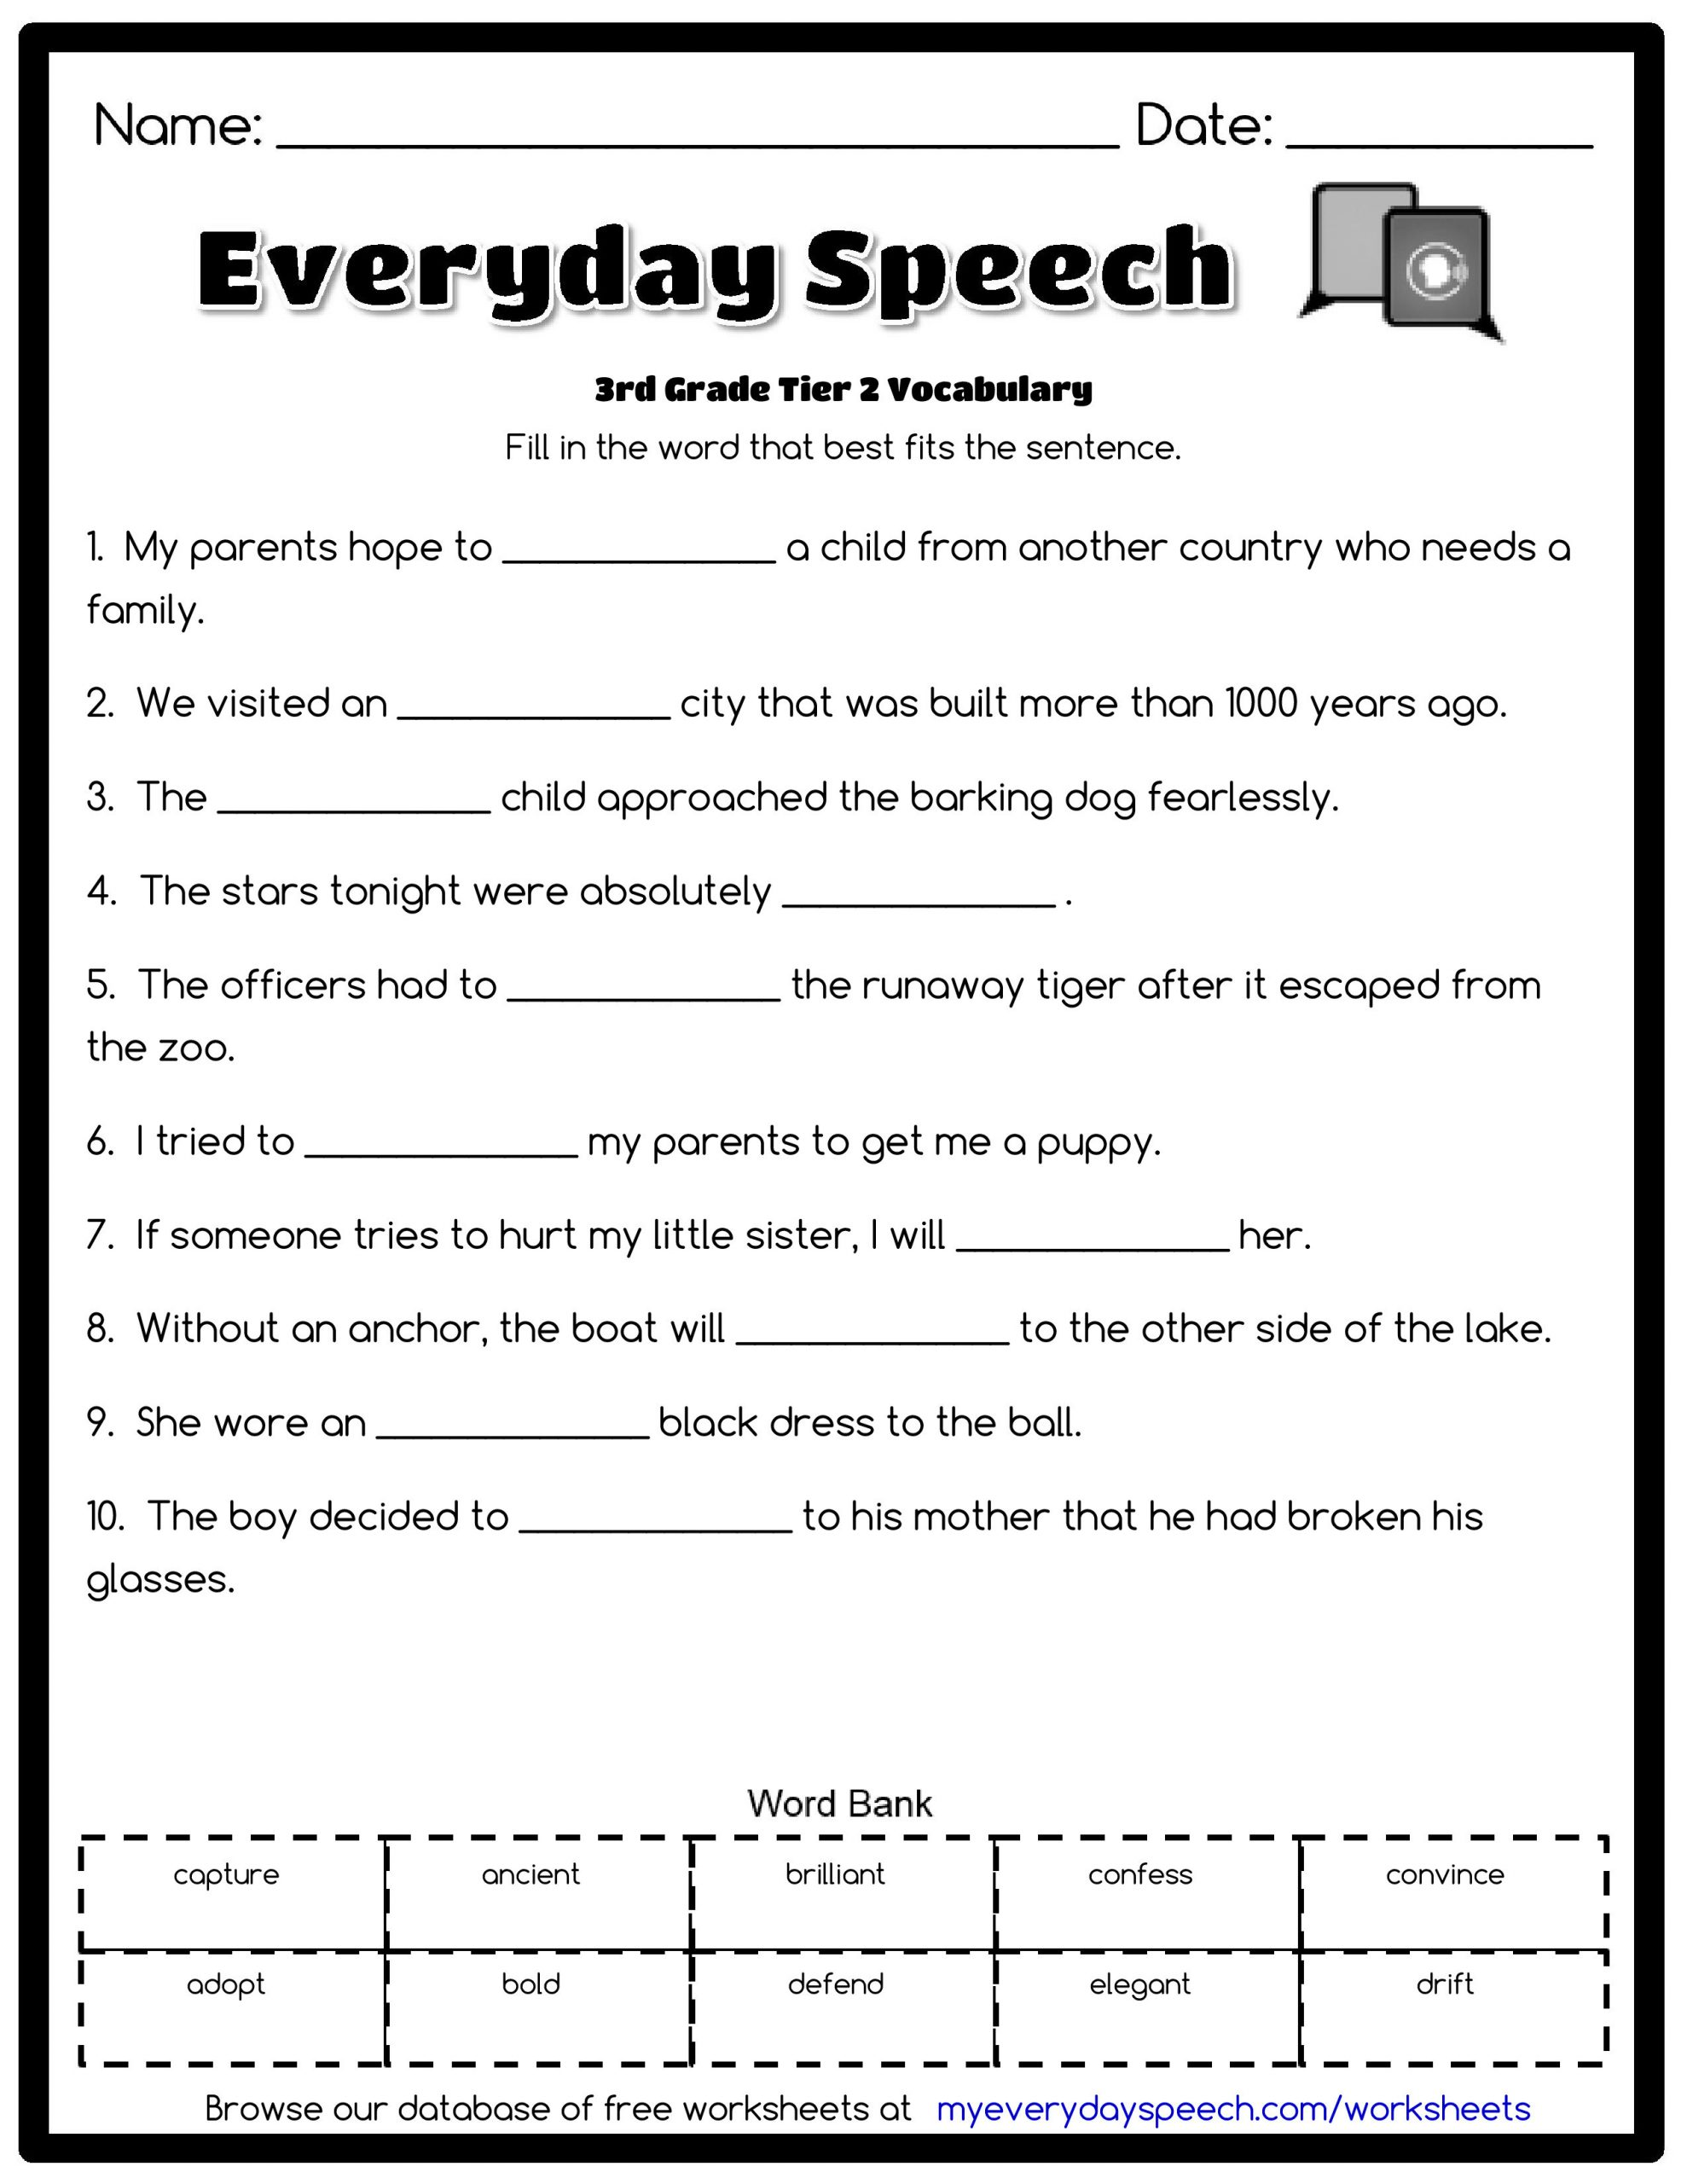 3rd Grade Science Worksheets 3rd Grade Vocabulary Worksheets for Download 3rd Grade